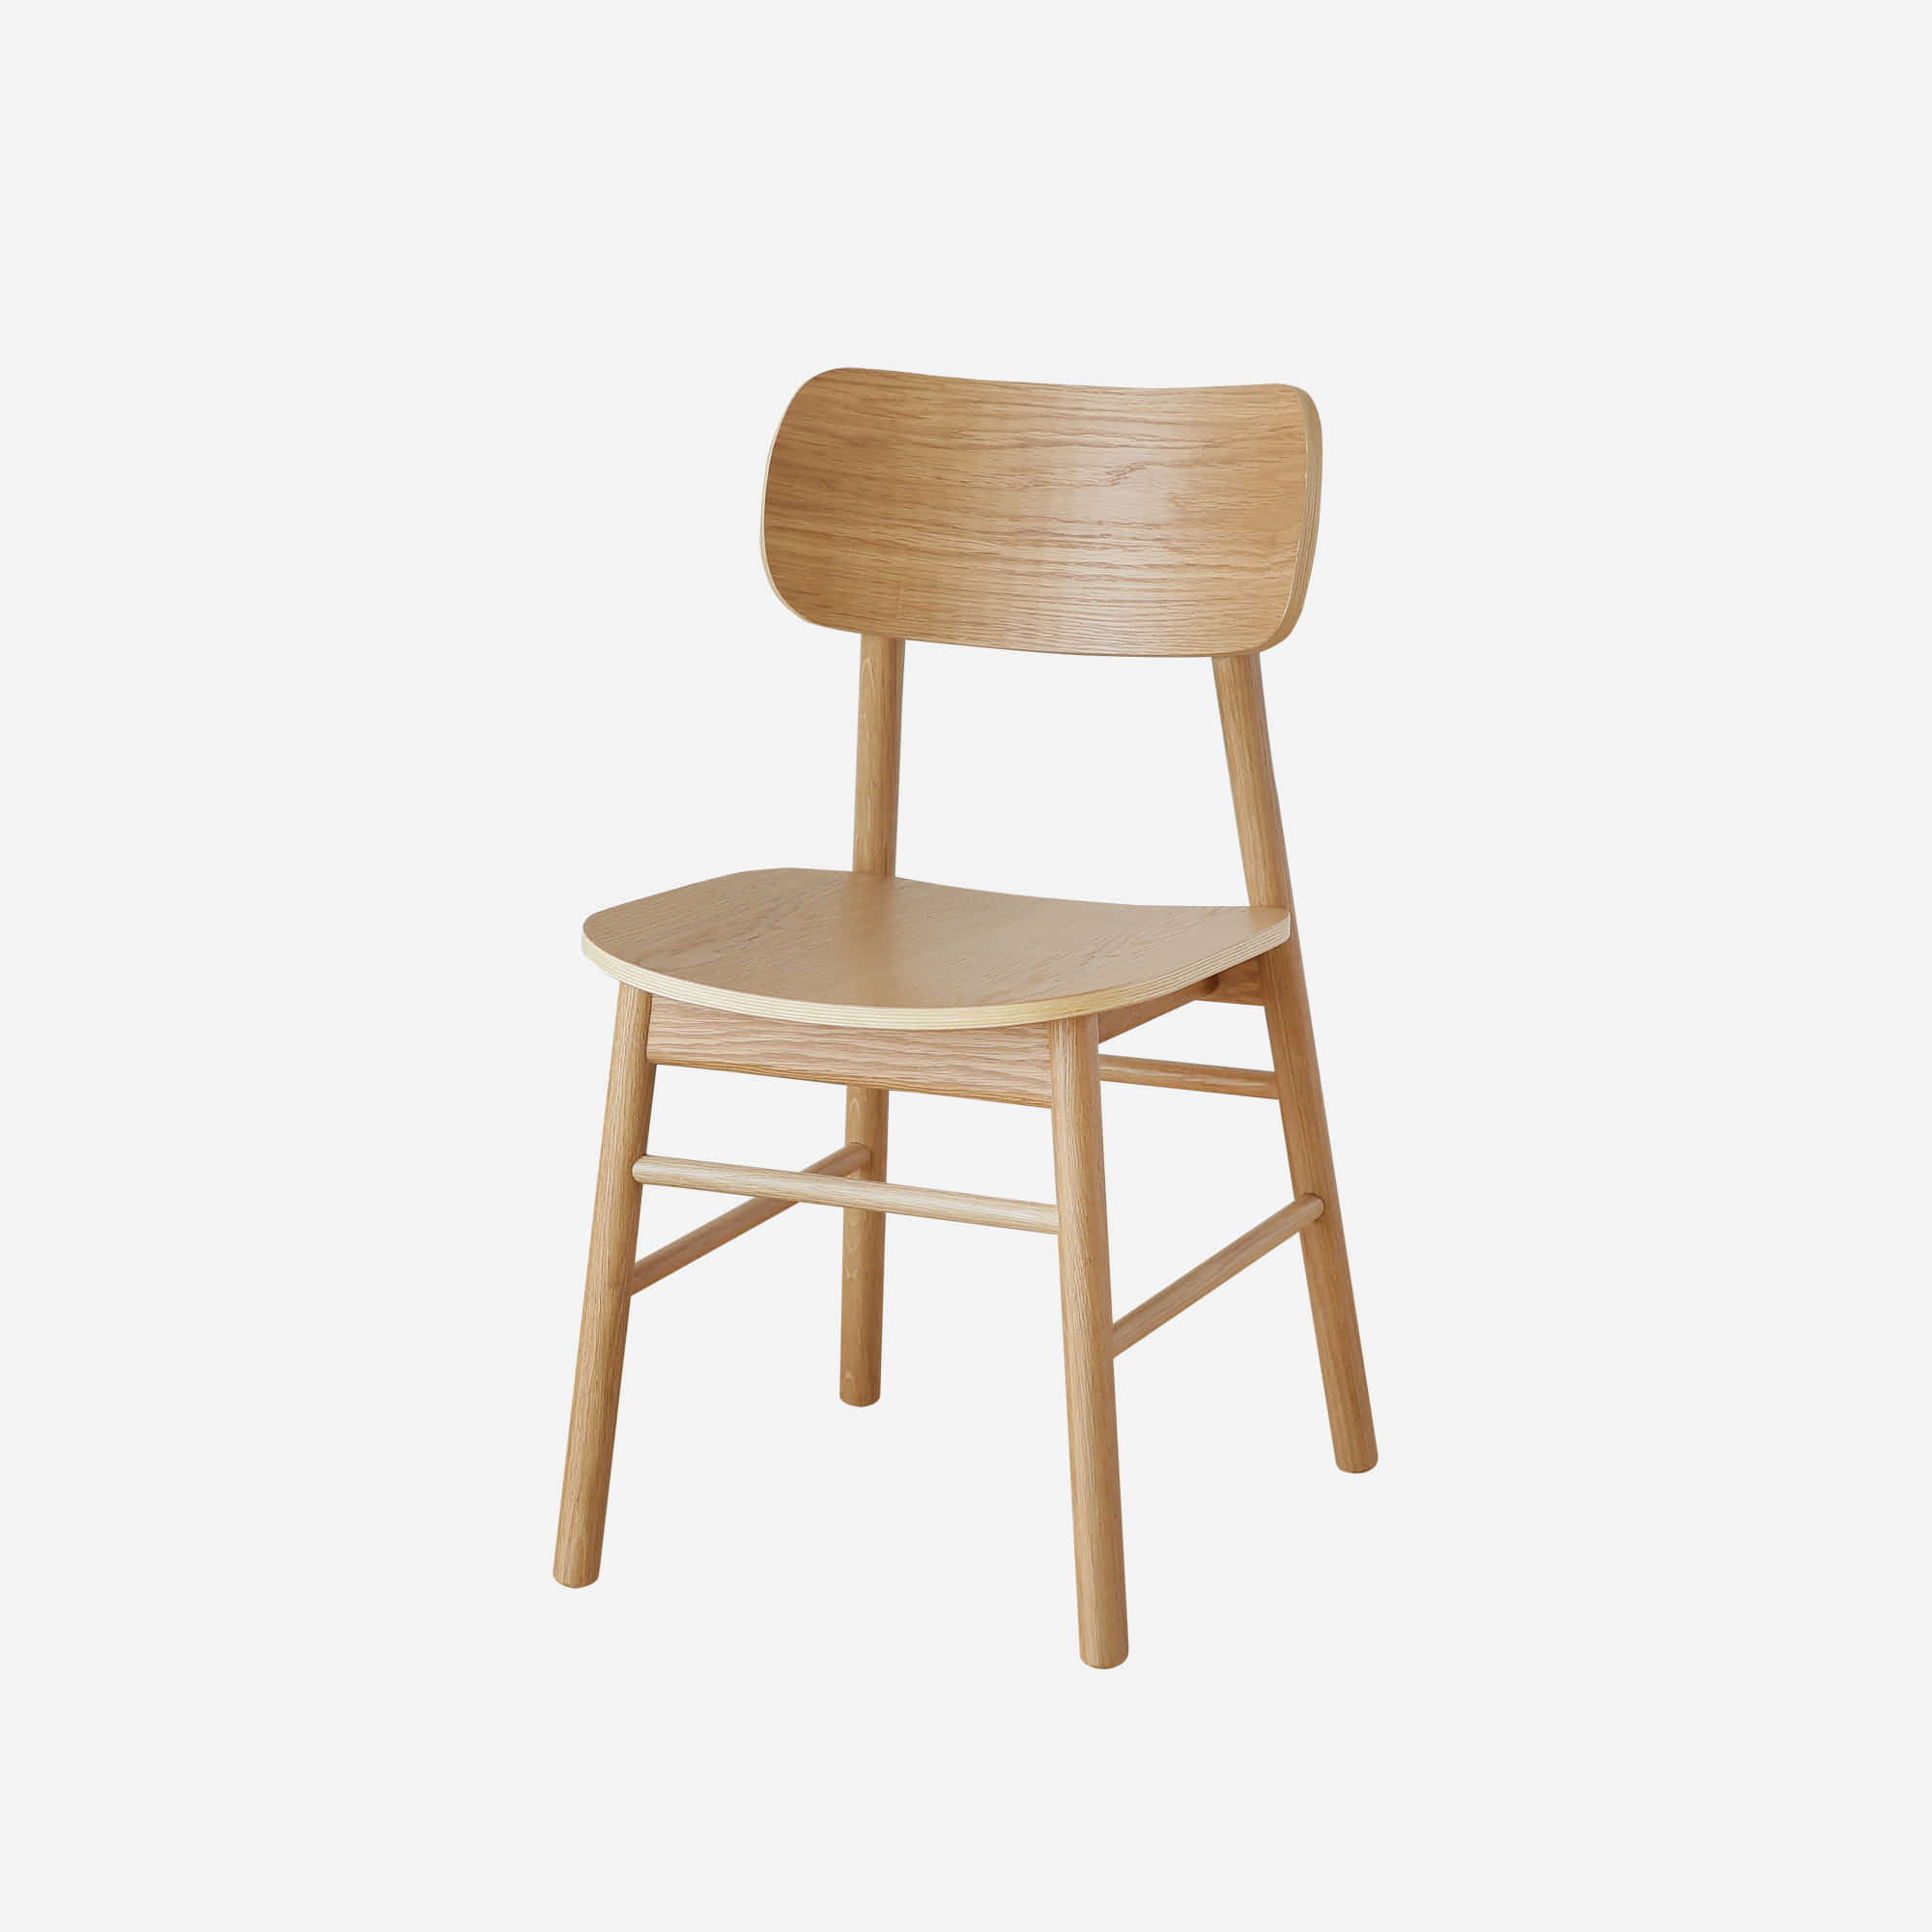 [얼리버드] Oblique Stick Leg P2 Chair